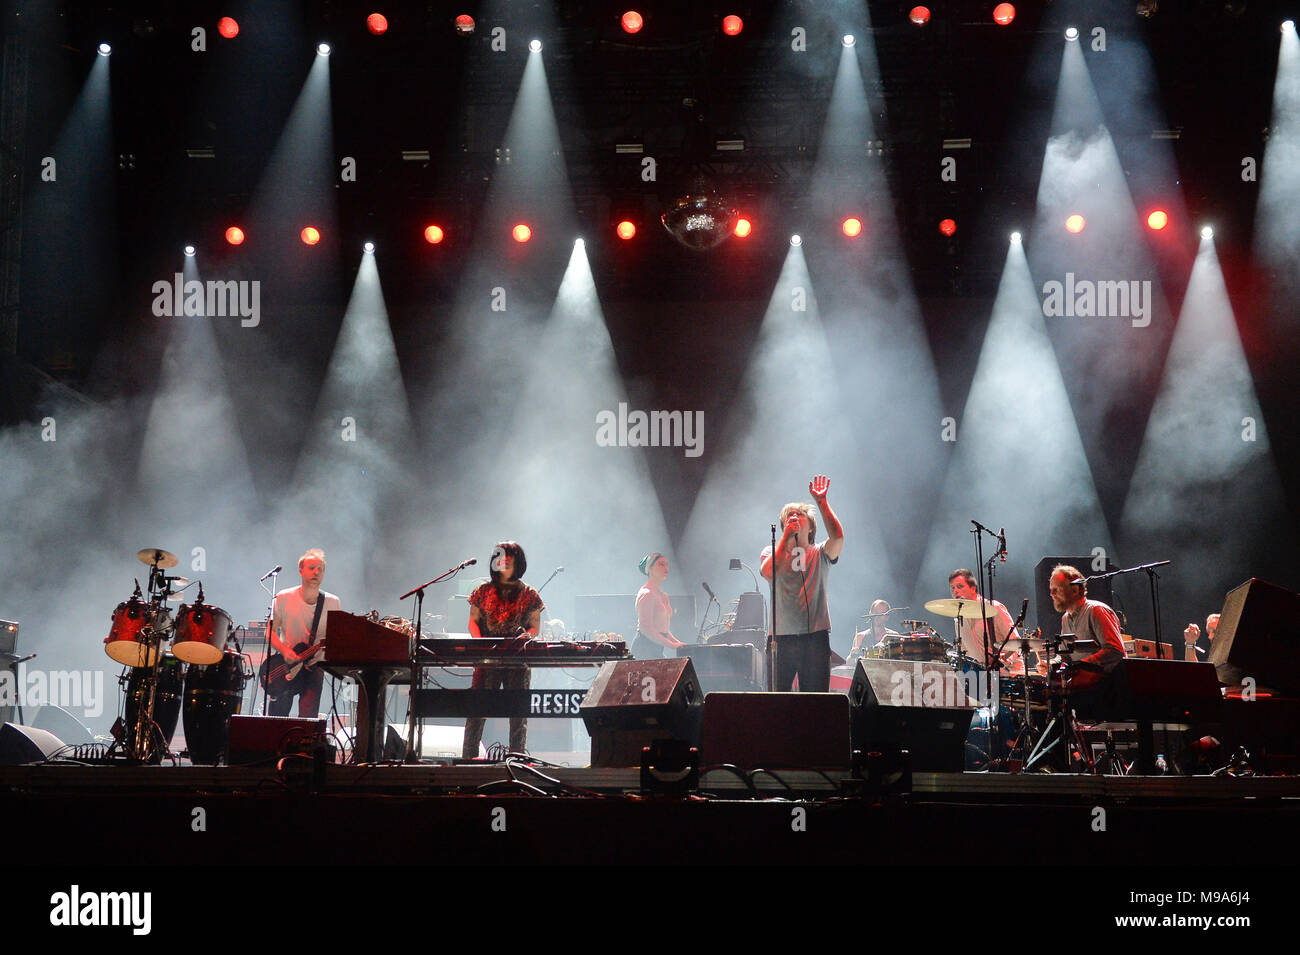 Sao Paulo, Brazil. 23rd March, 2018. SoundSystem LCD band presents at the 2014 Lollapalooza festival, held at the Autodromo de Interlagos in São Paulo, on the afternoon of this Friday, 23 (PHOTO: LEVI BIANCO/BRAZIL PHOTO PRESS) Credit: Brazil Photo Press/Alamy Live News - Stock Image